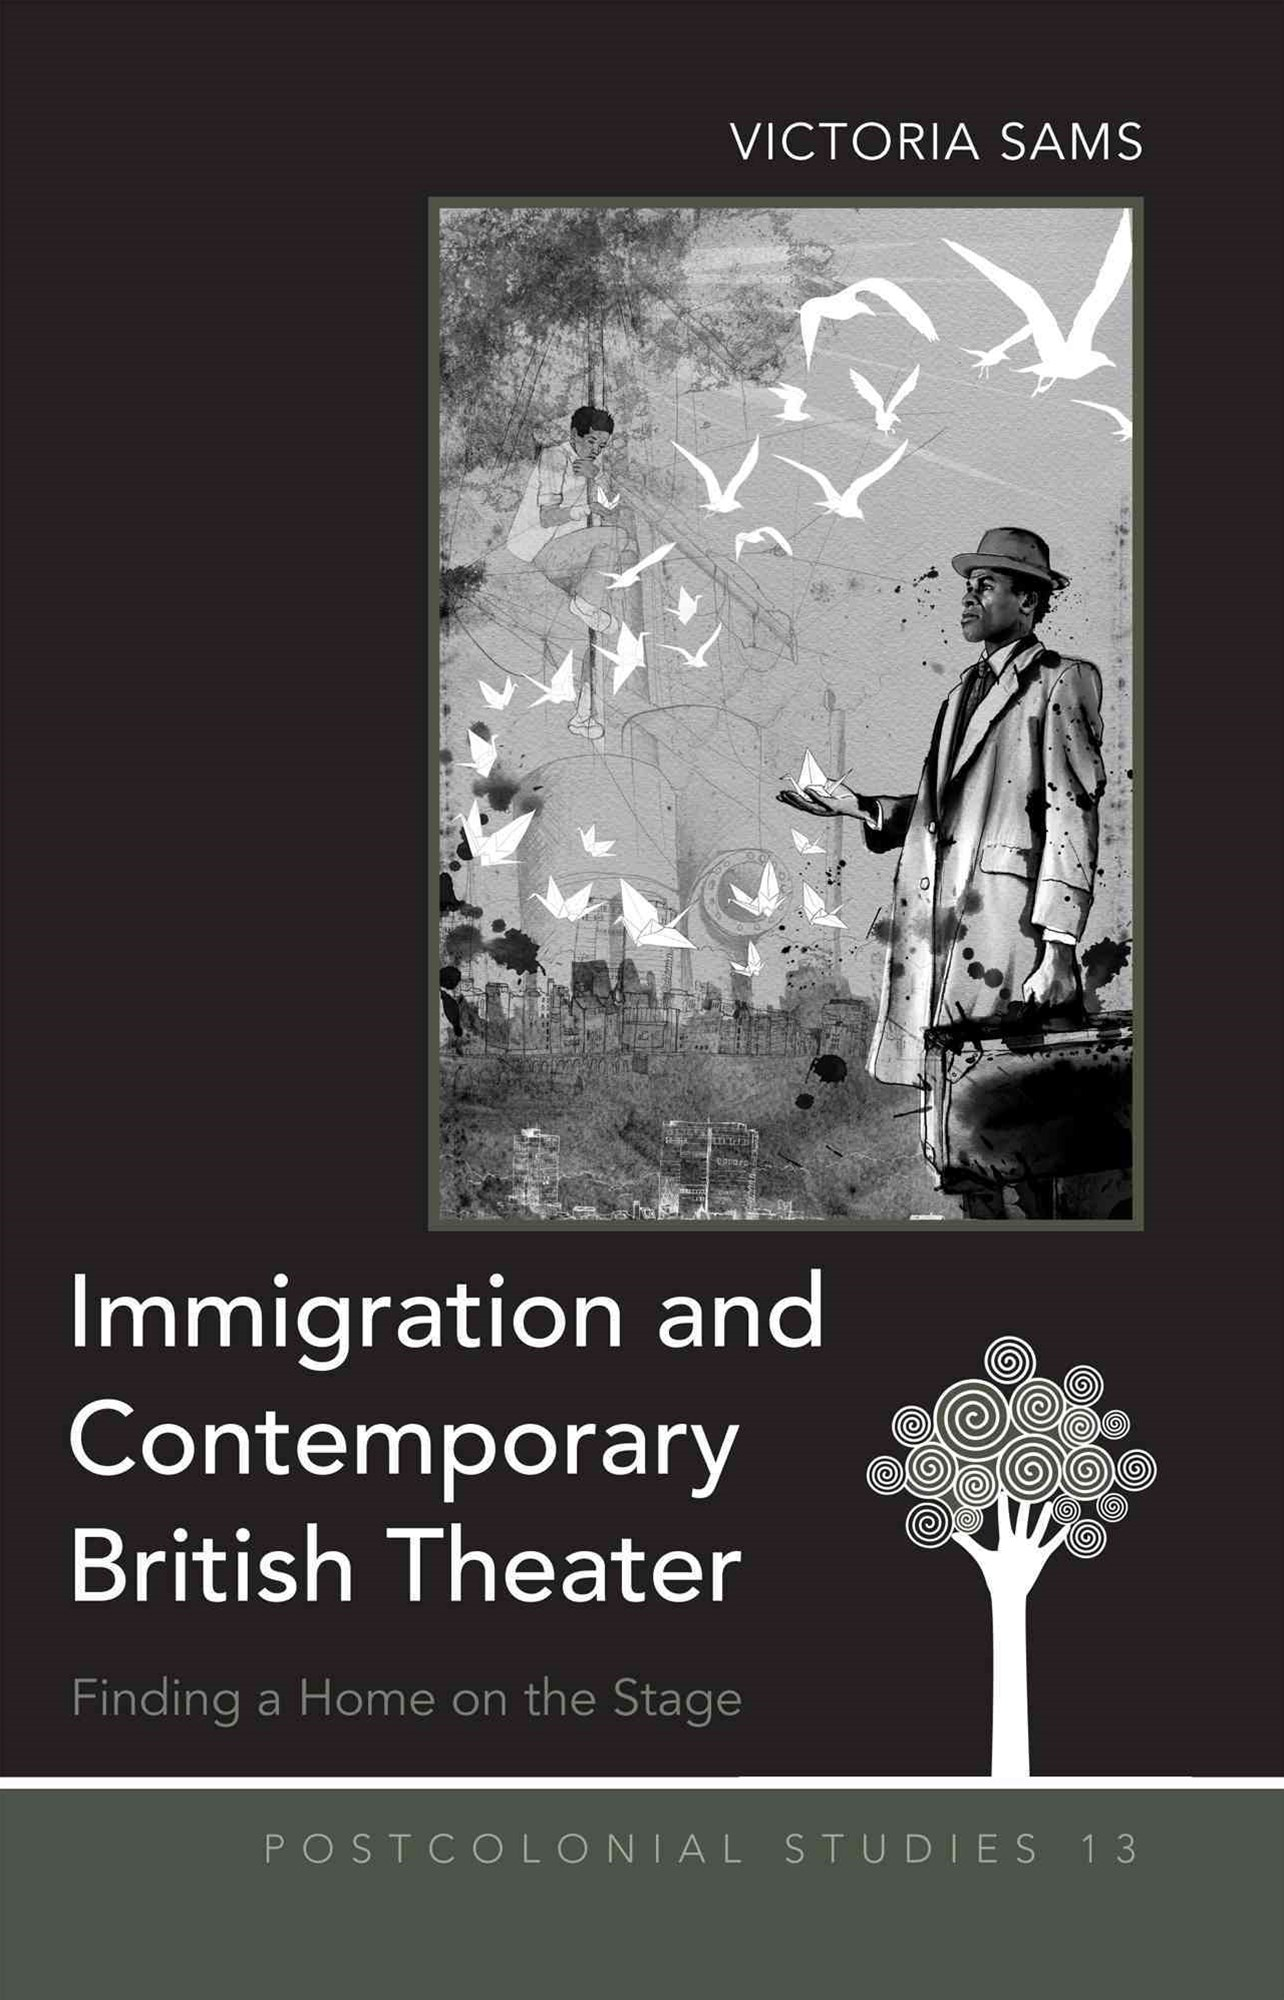 Immigration and Contemporary Theatre in Britain